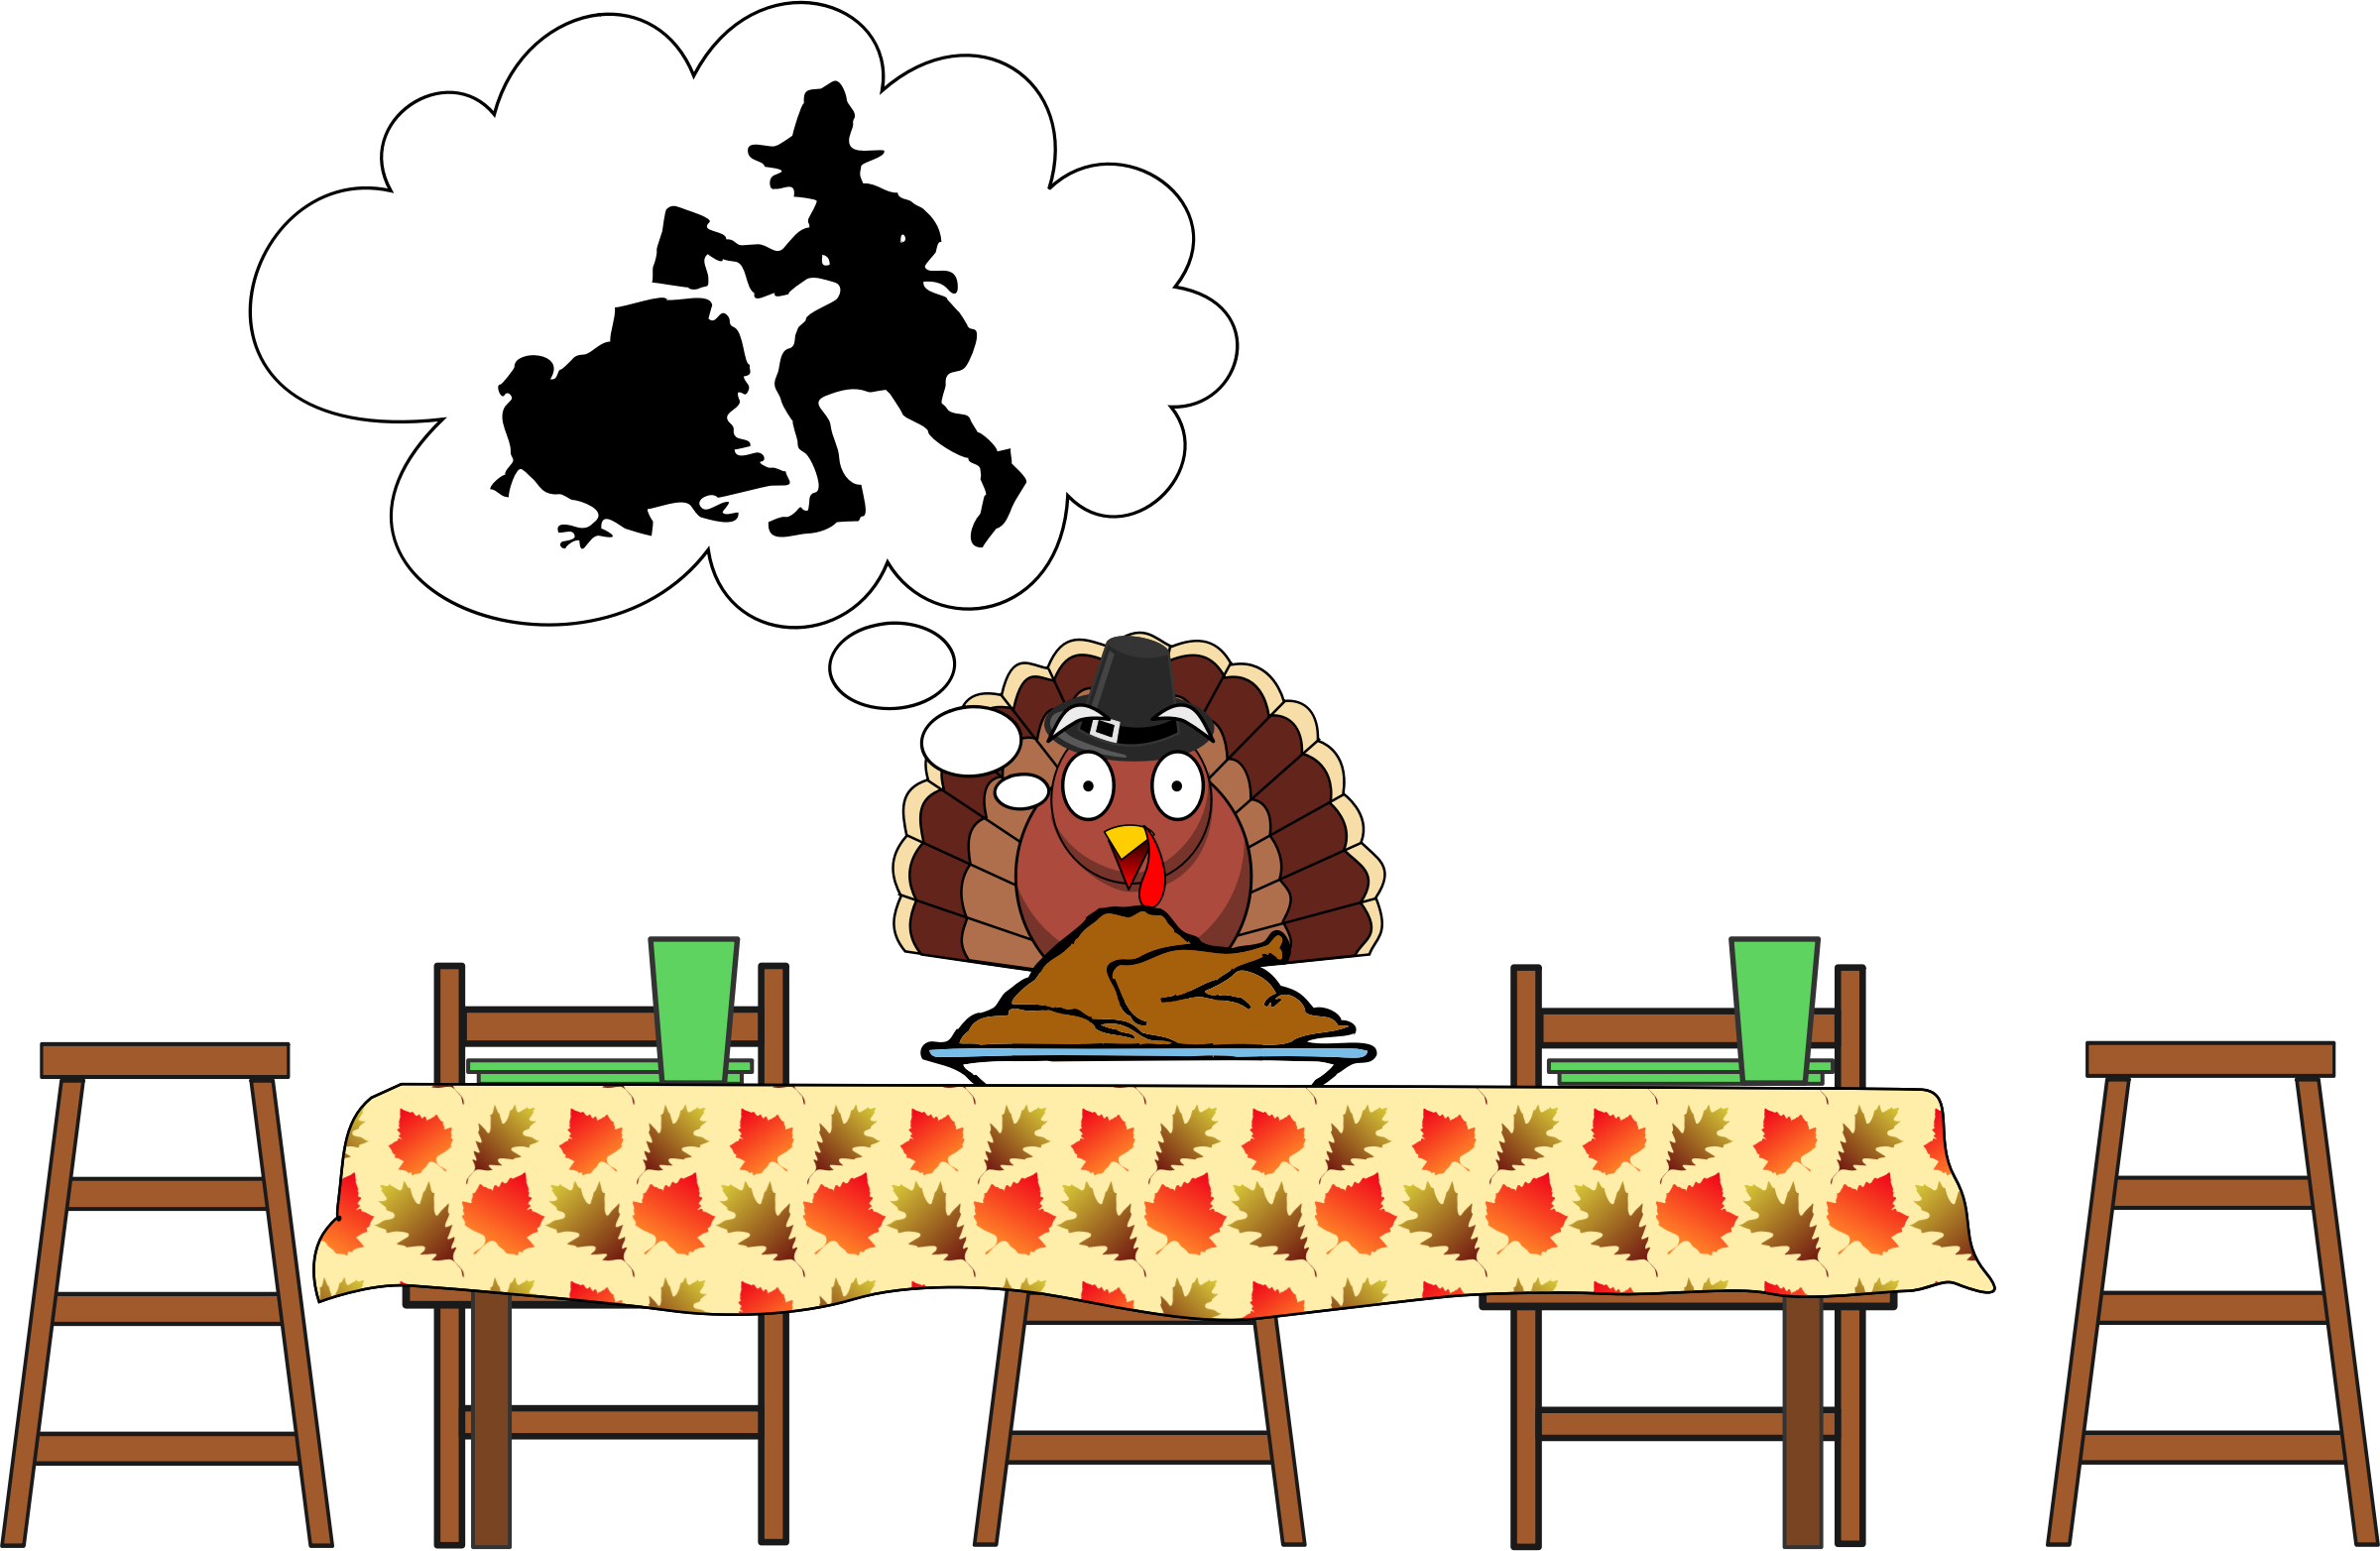 Scared thanksgiving big image. Clipart turkey happy